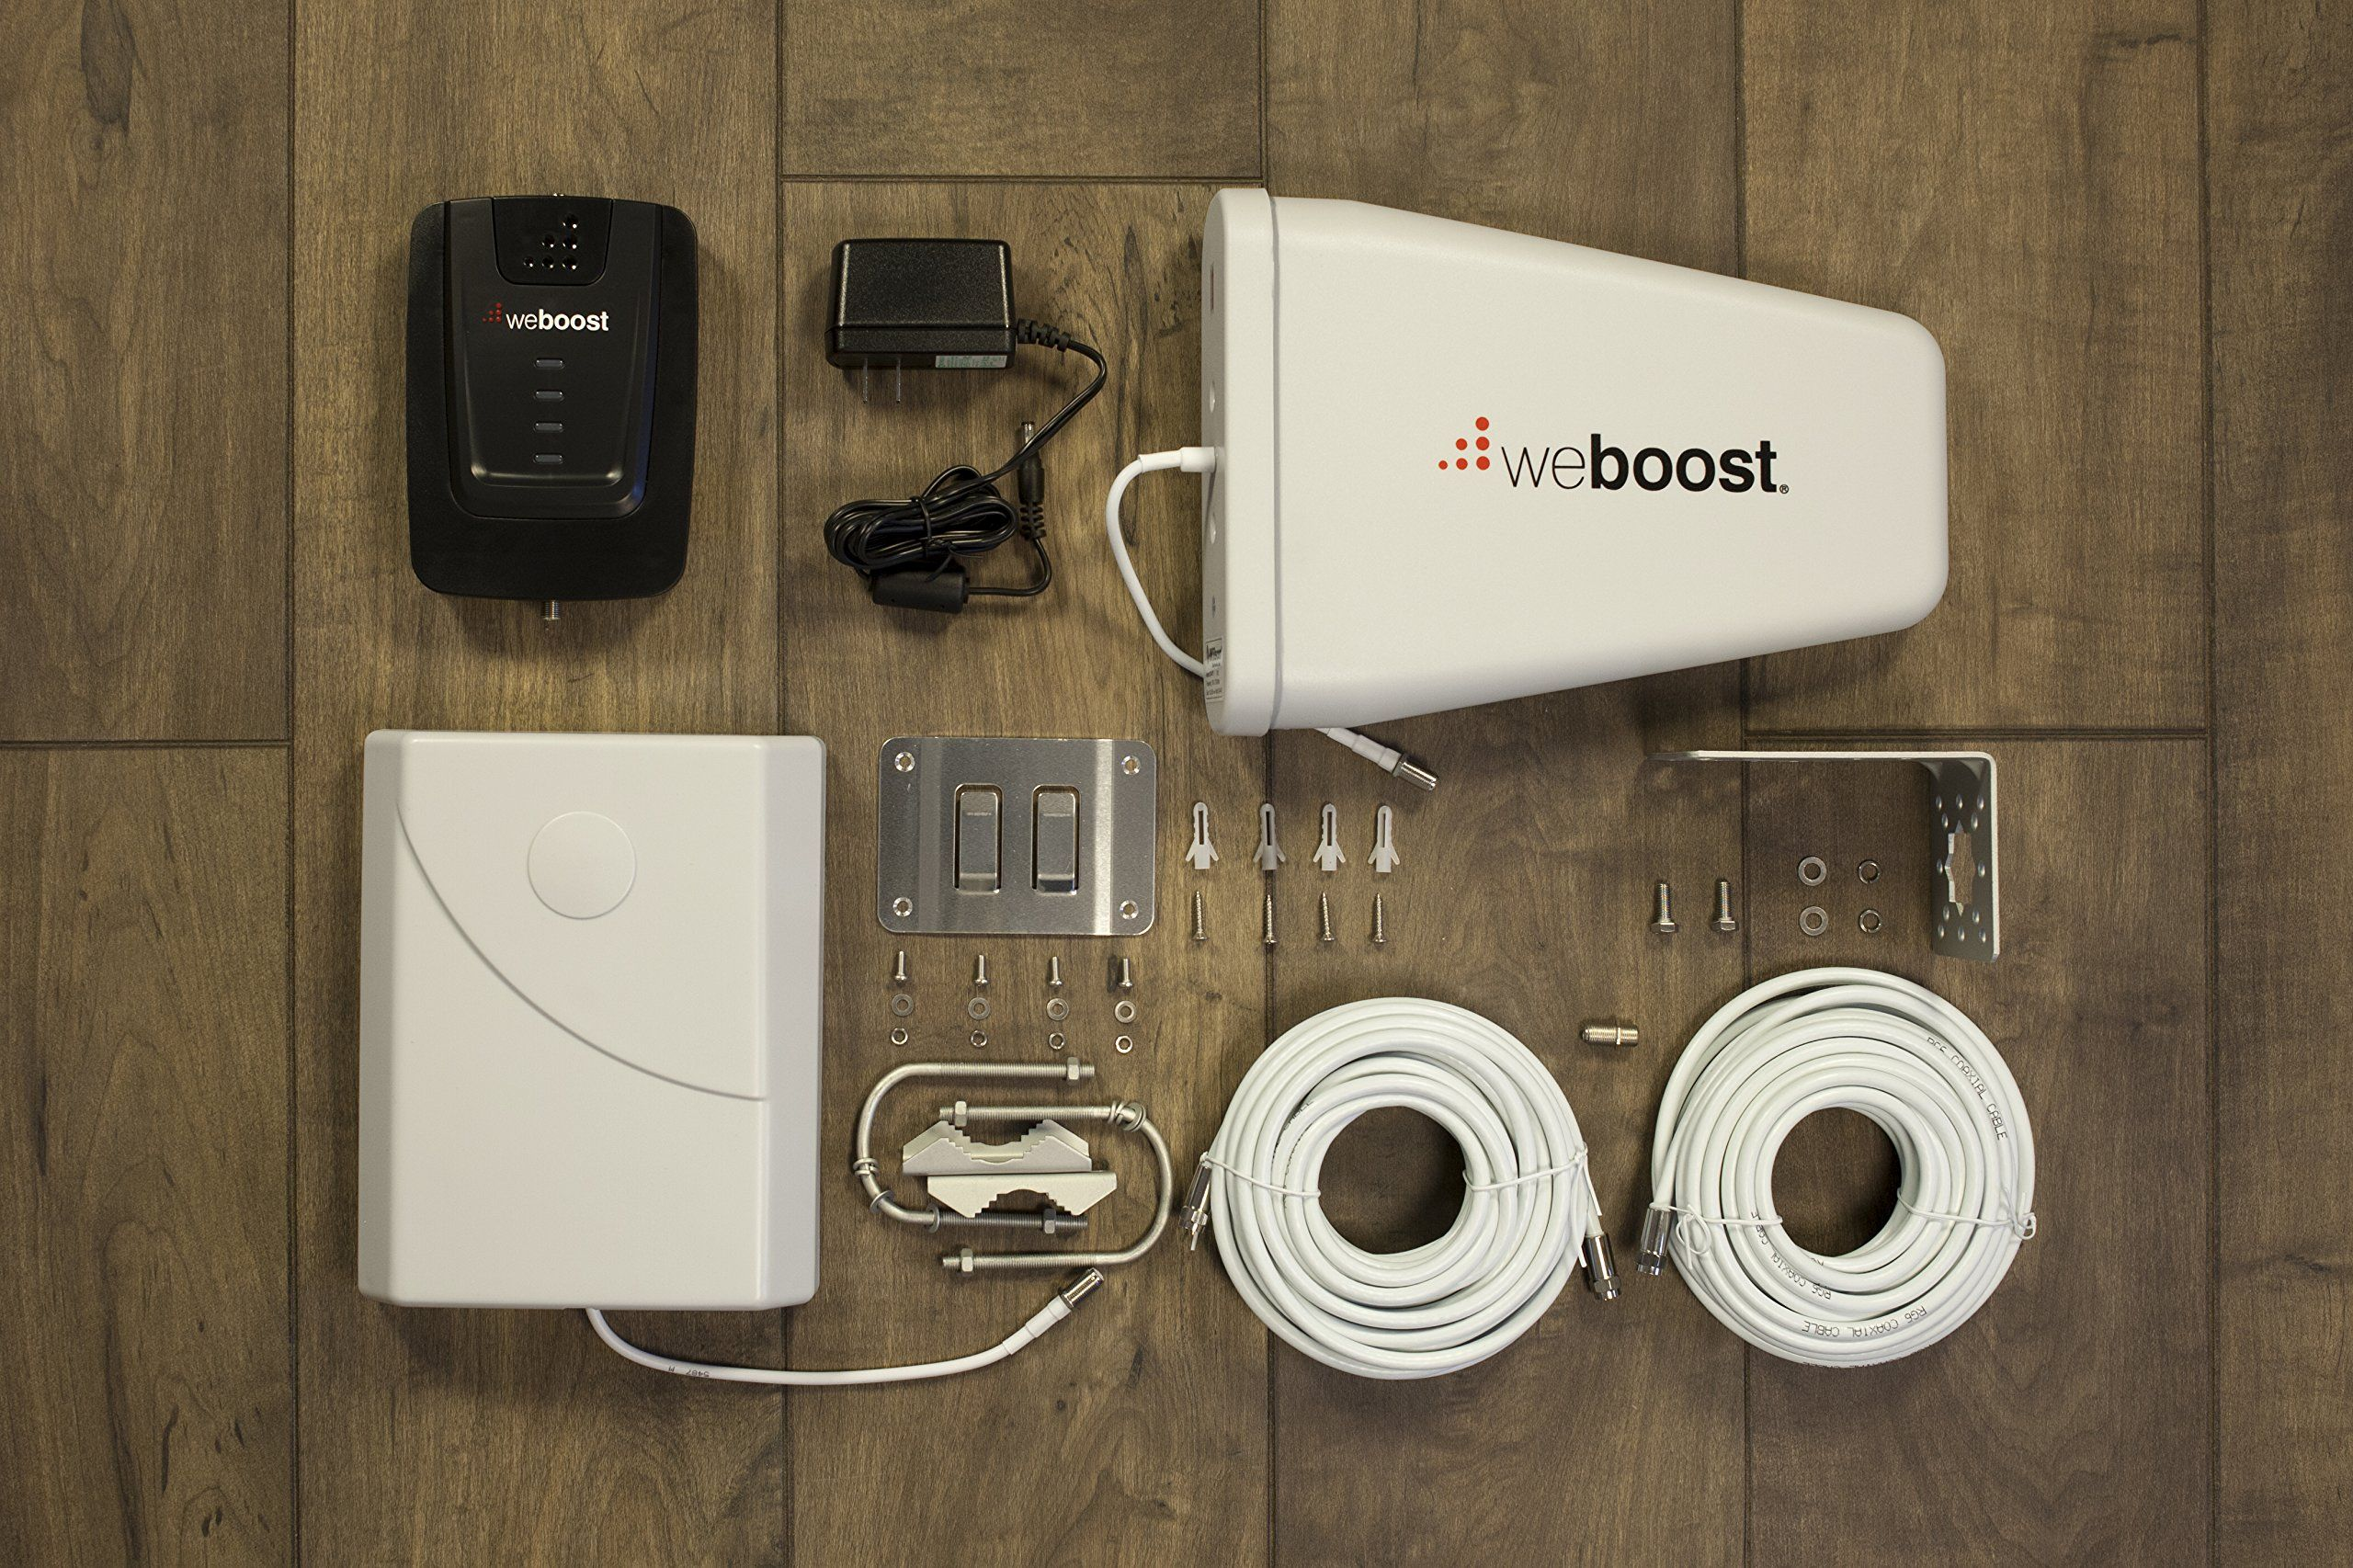 Weboost Connect 4g 470103 Indoor Cell Phone Signal Booster For Home And Office Supports 5 000 Cell Phone Signal Cell Phone Booster Cell Phone Signal Booster